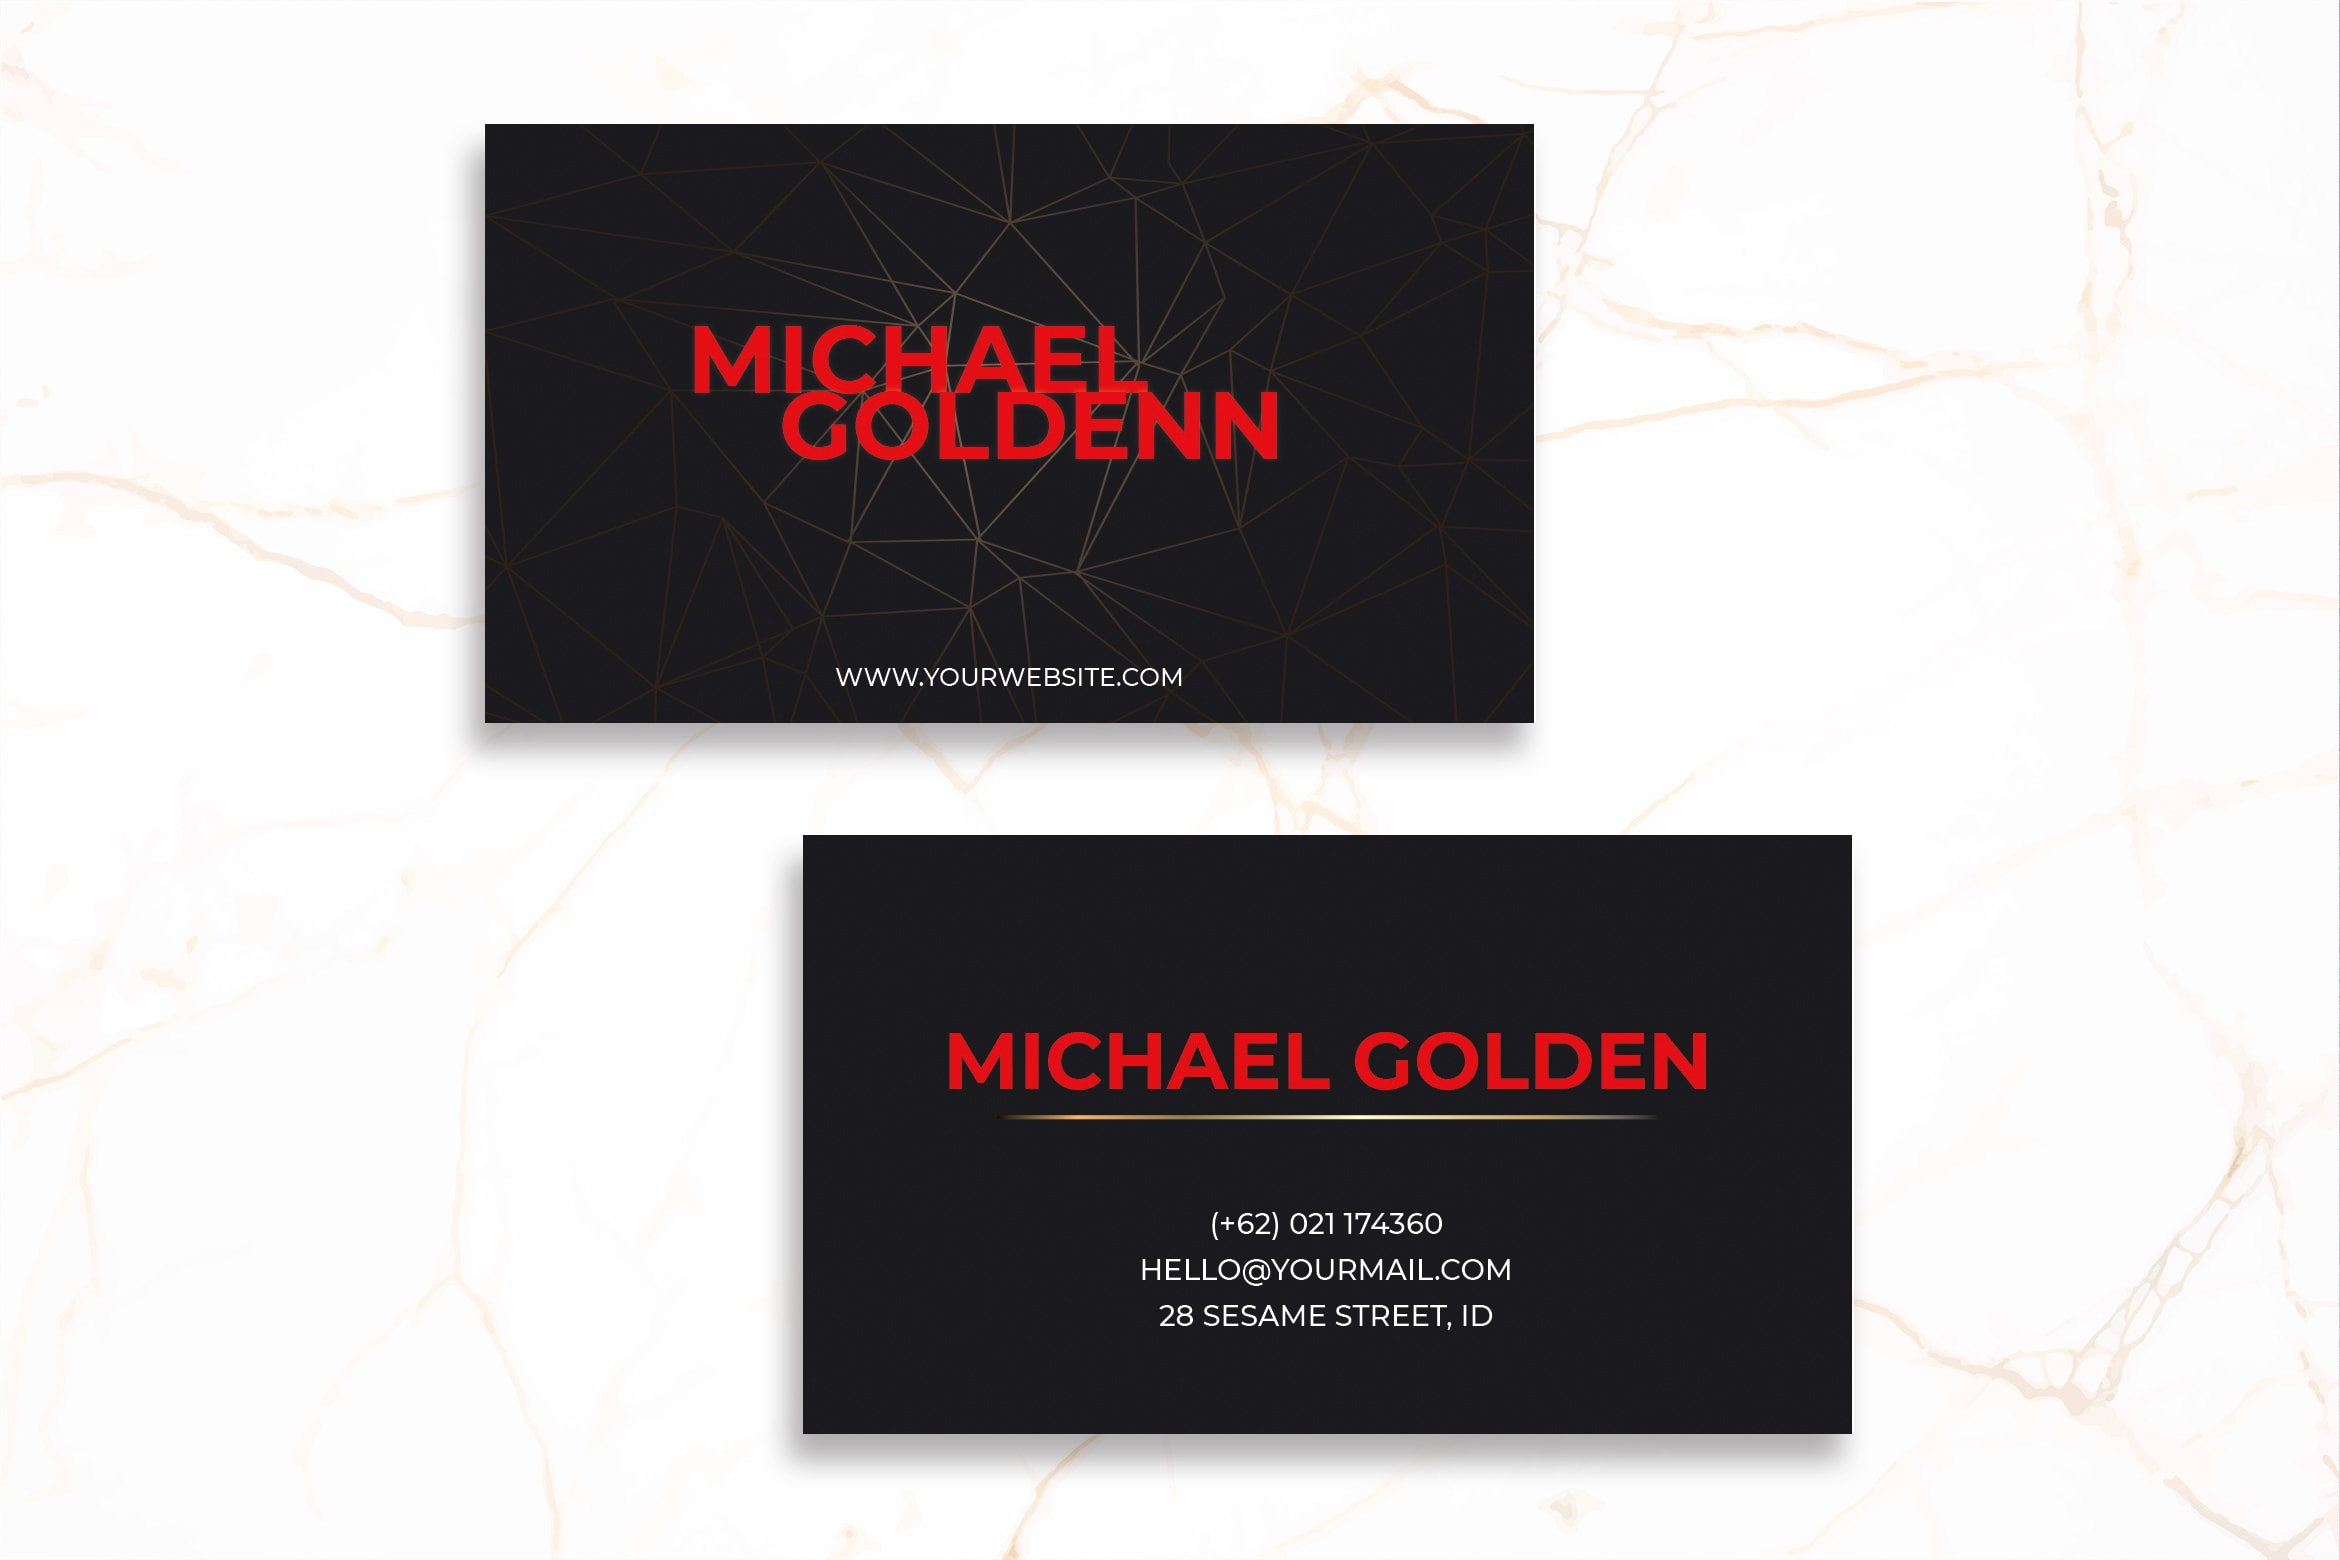 Business Card - Black Template